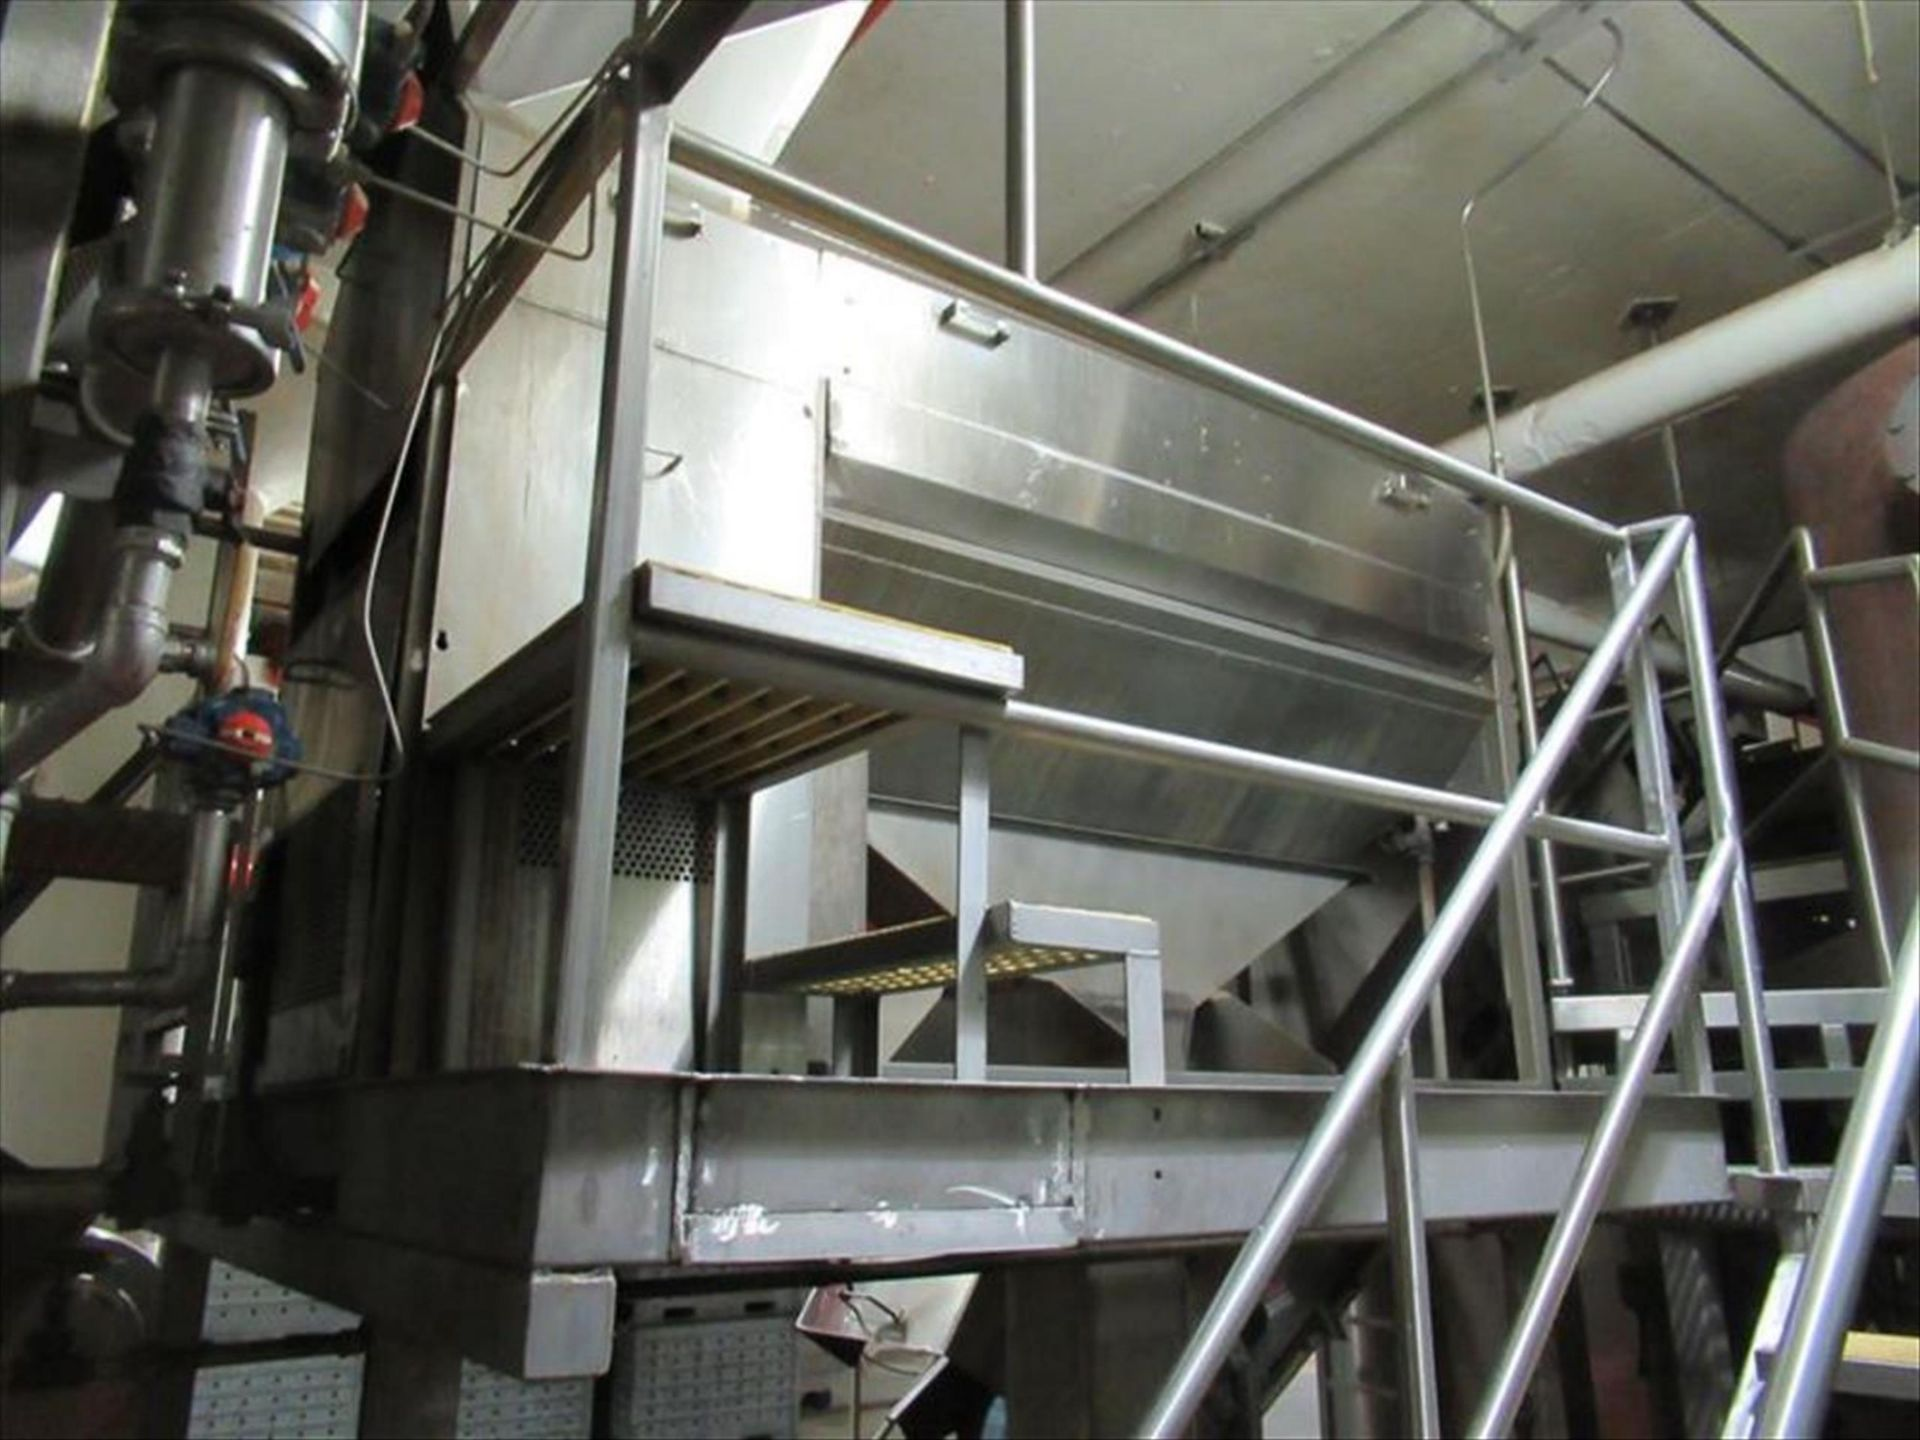 Lot 160 - Brush washer with screw continuous washing / scrubbing machine, 6 brush rollers, spray bar, approx